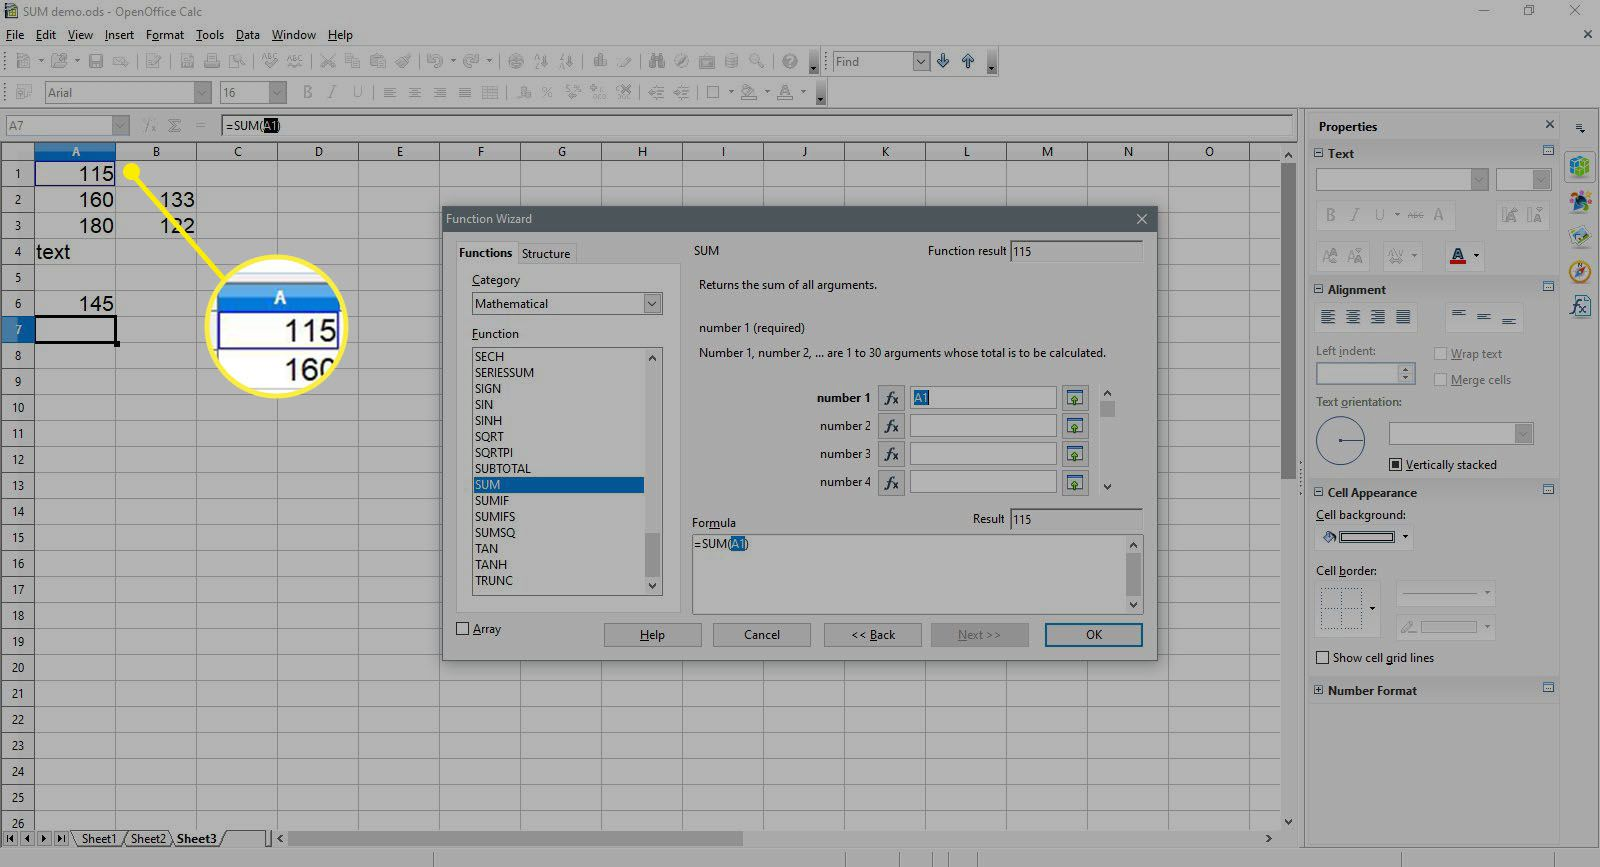 Selecting A1 cell in OpenOffice Calc.